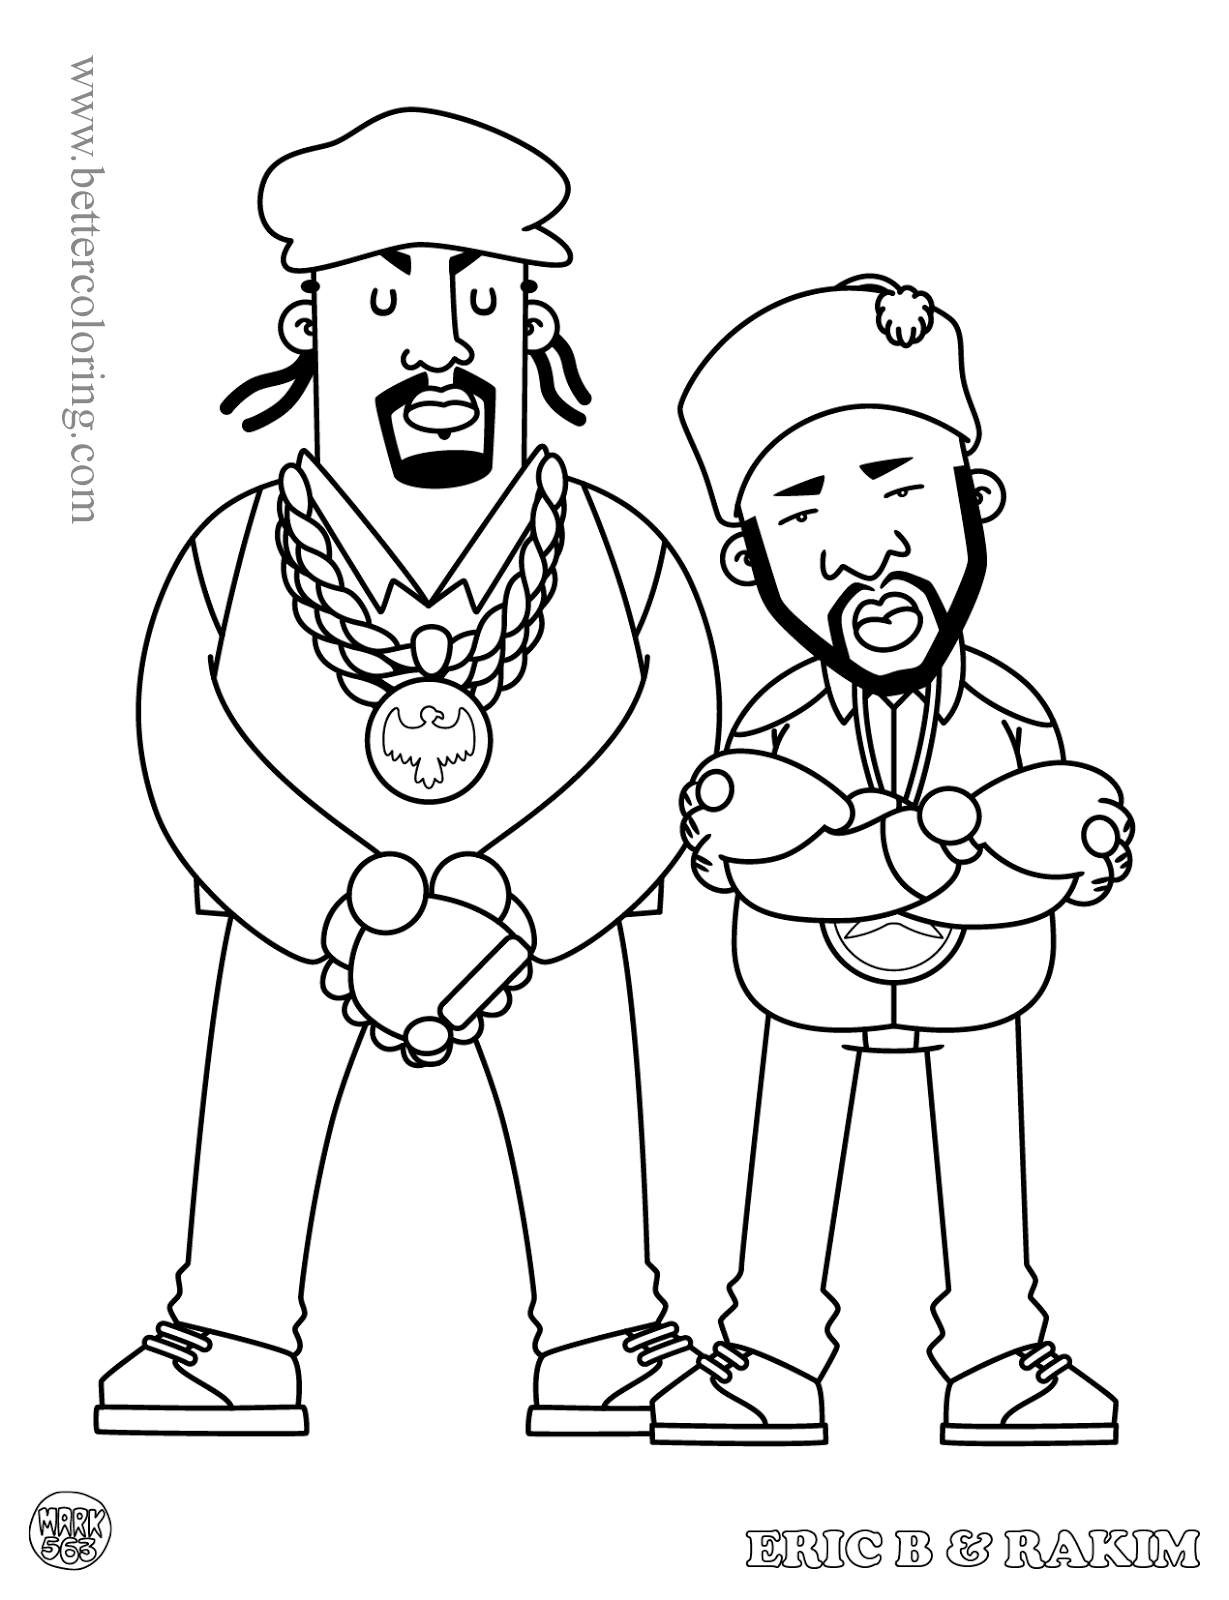 Free Rapper Eric B and Rakim Coloring Pages printable